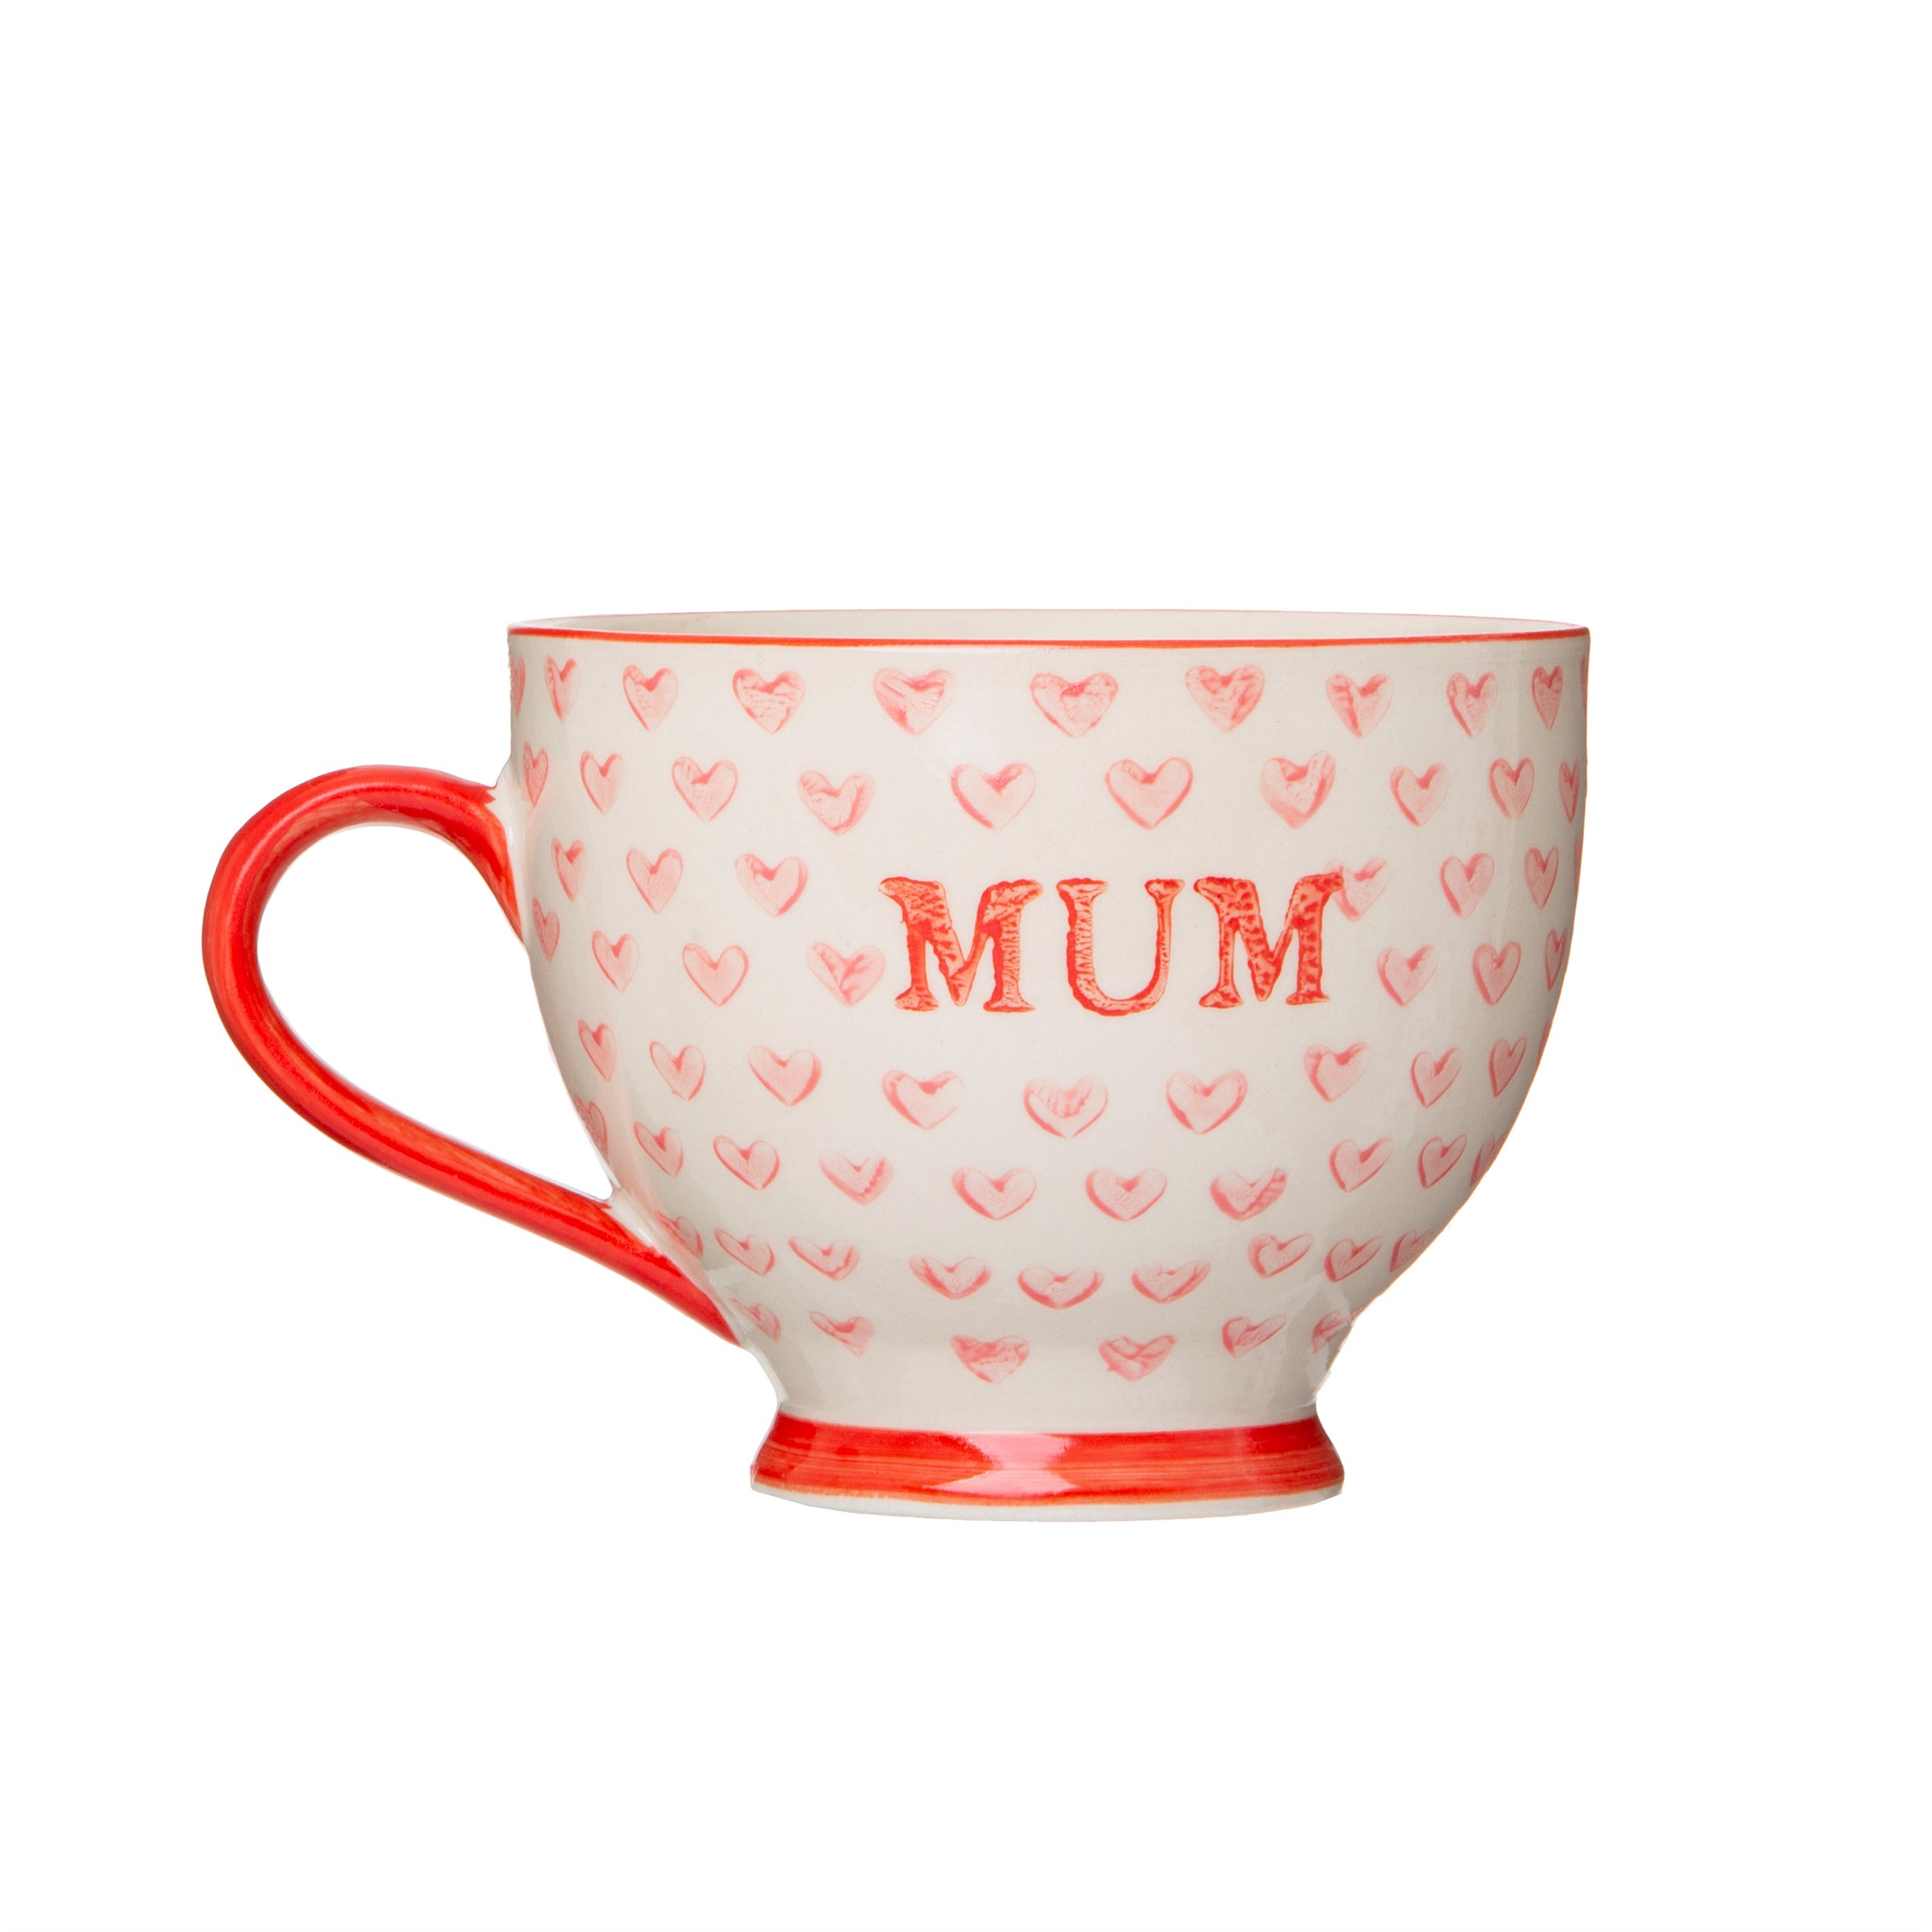 Bohemian Red Hearts 'Mum' Mug